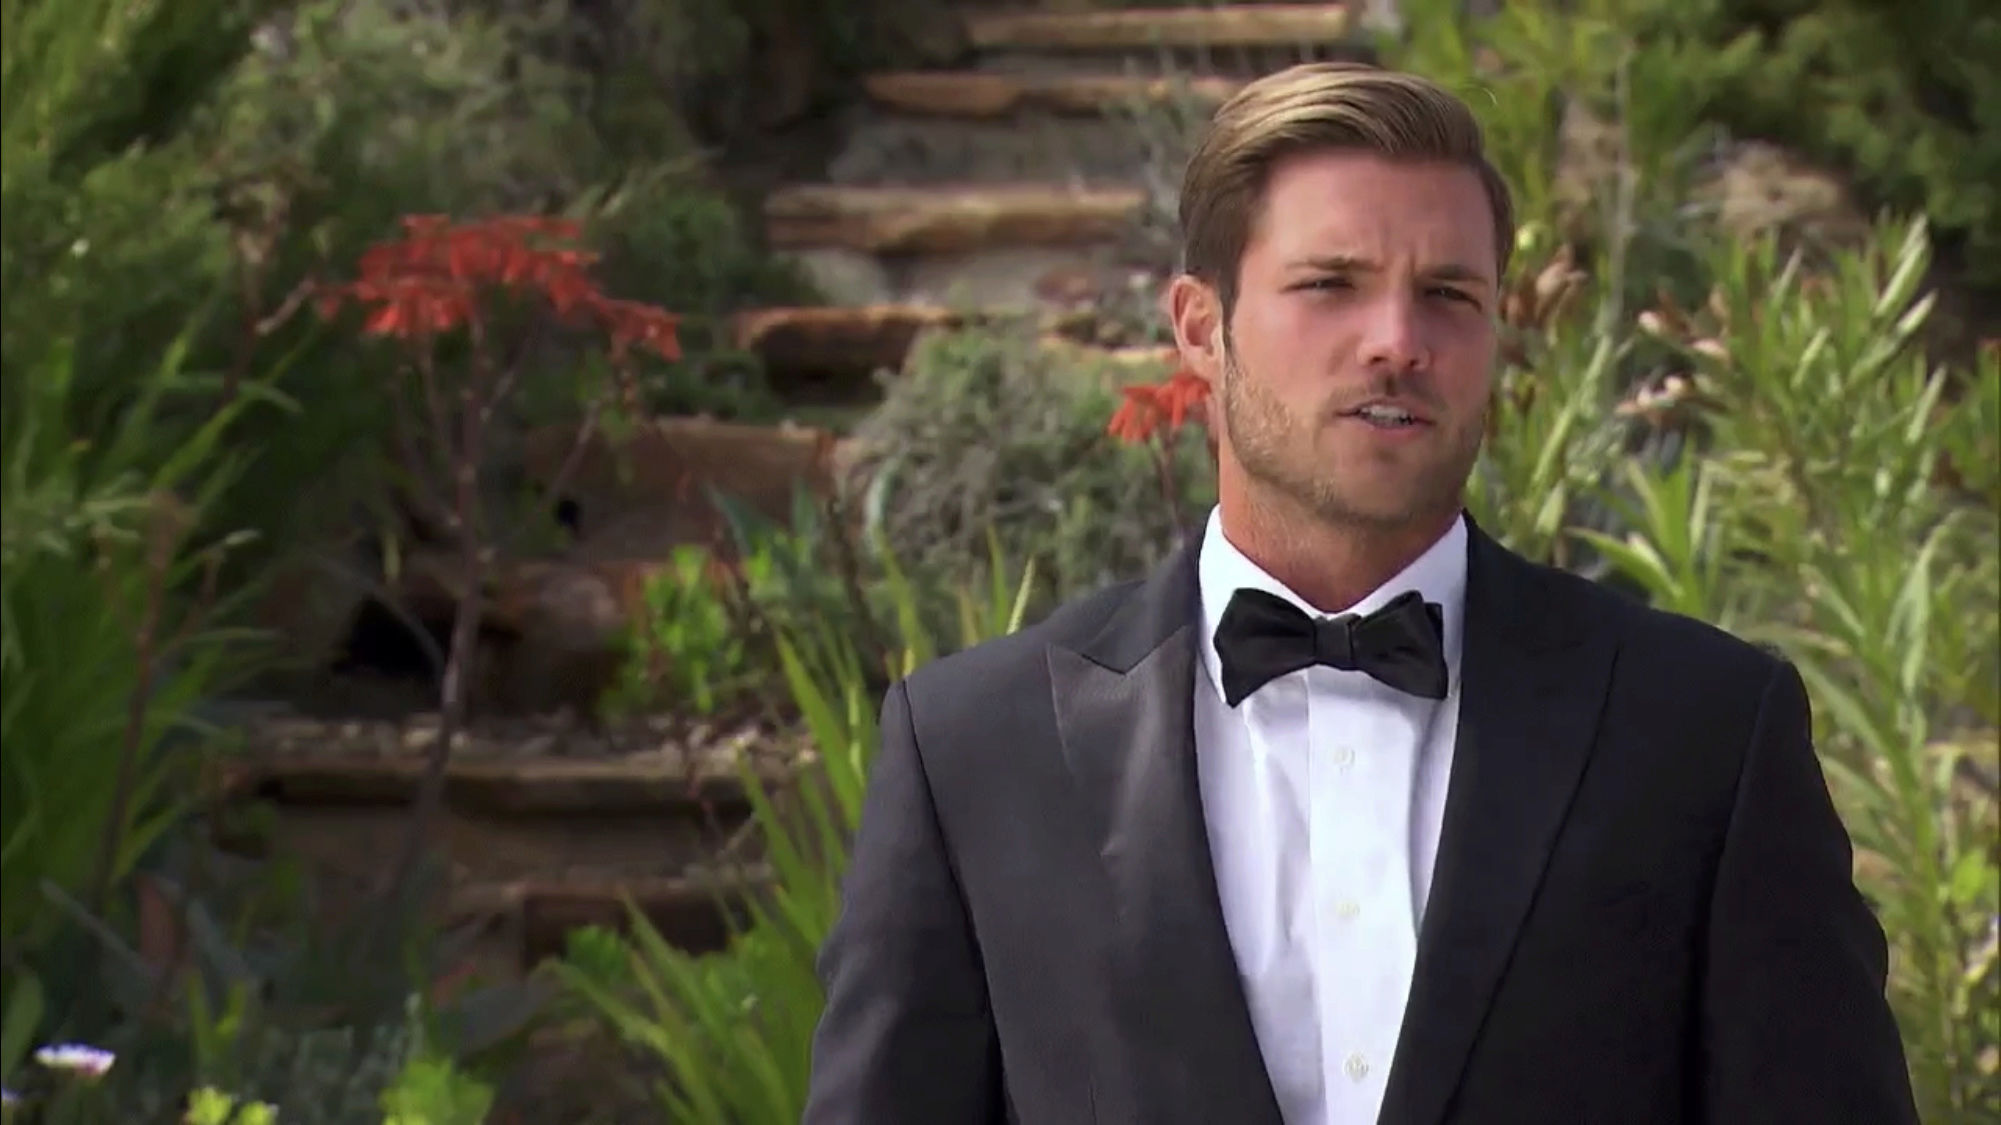 Bachelorette 14 - Becca Kufrin - ScreenCaps - NO Discussion - *Sleuthing Spoilers* D9350910